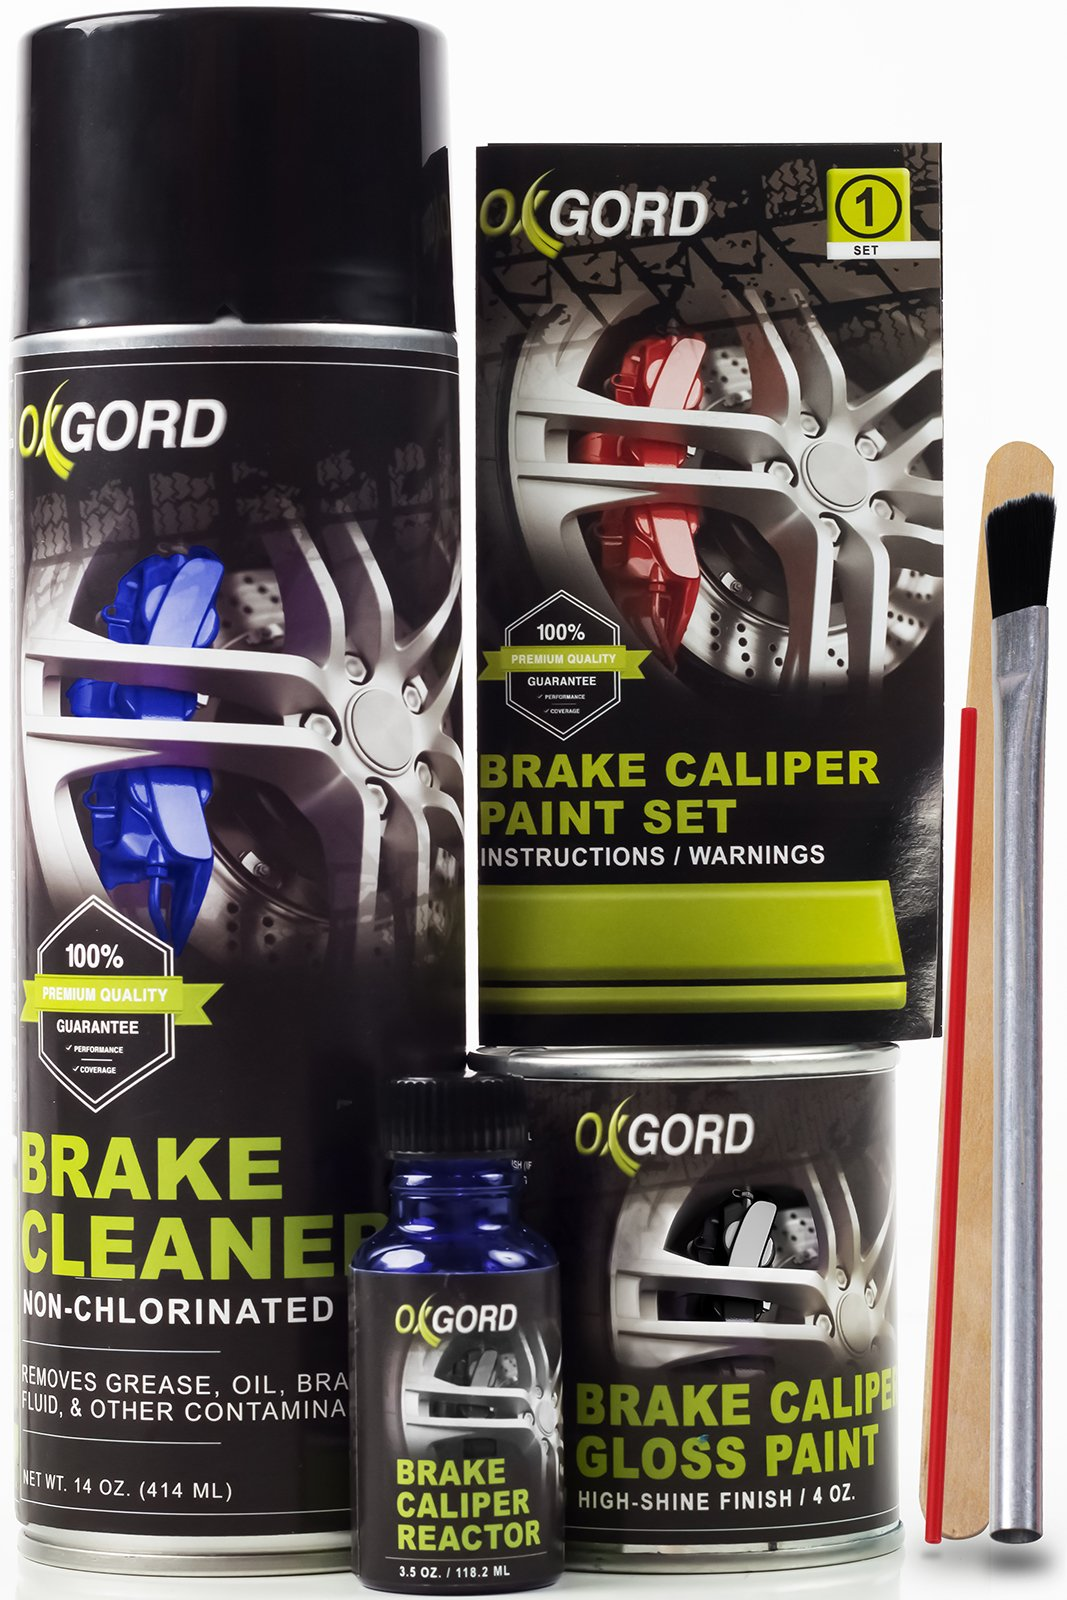 OxGord Brake Caliper Paint Kit - High Heat 980-Degree F, Two-Part Gloss Paint with Cleaning Spray and Brush, Black Finish